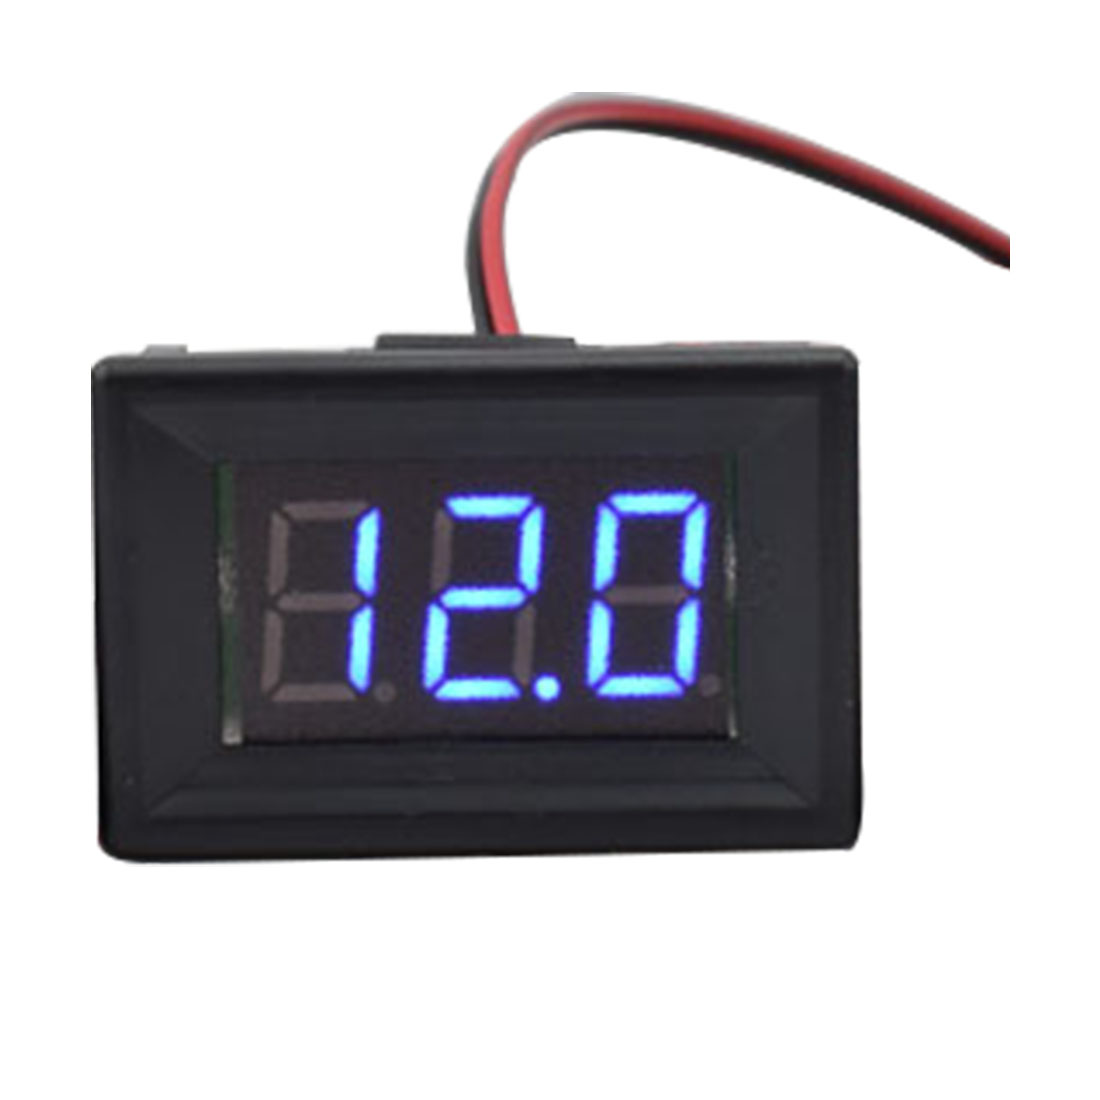 1pcs Digital Voltmeter Two Wires <font><b>0.36</b></font> inch <font><b>LED</b></font> Display Blue DC 4.50V-30.0V Digital Panel Voltage Meter voltage indicator image